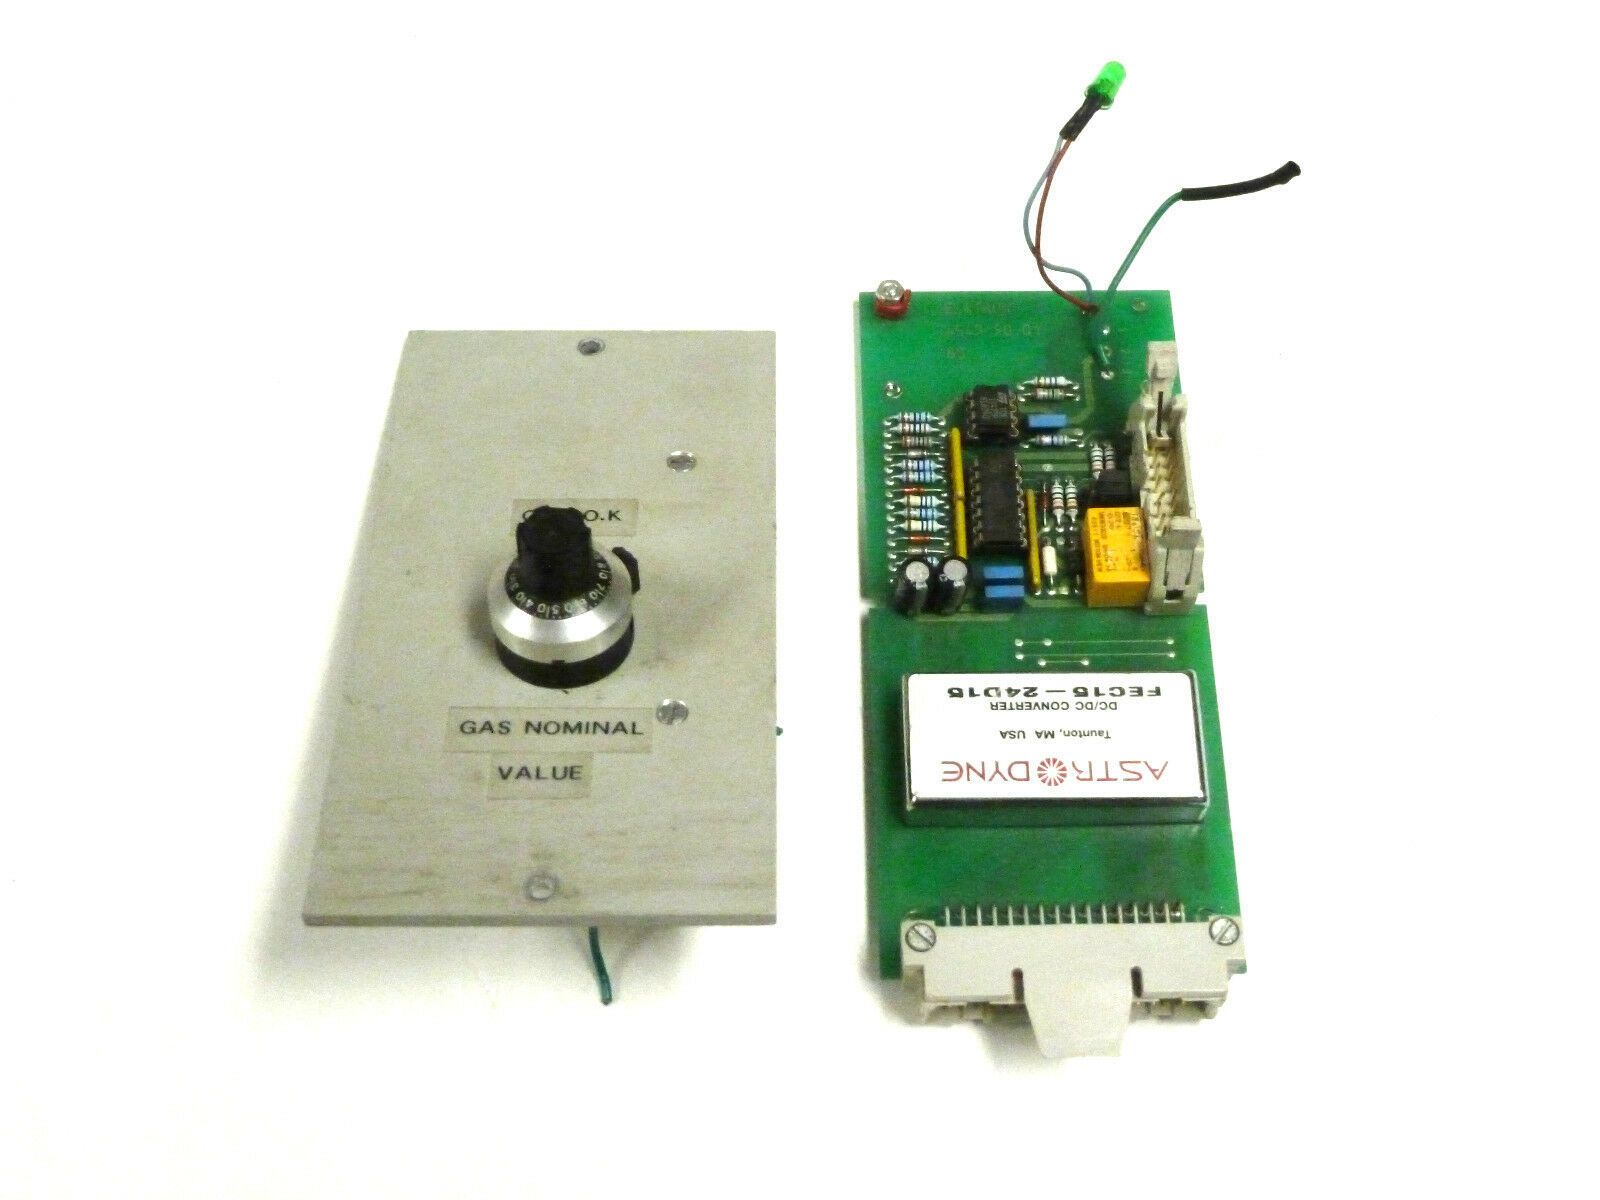 ELATRON 4549.09.01 GAS FLOW CONTROL BOARD 870476050114 45499001